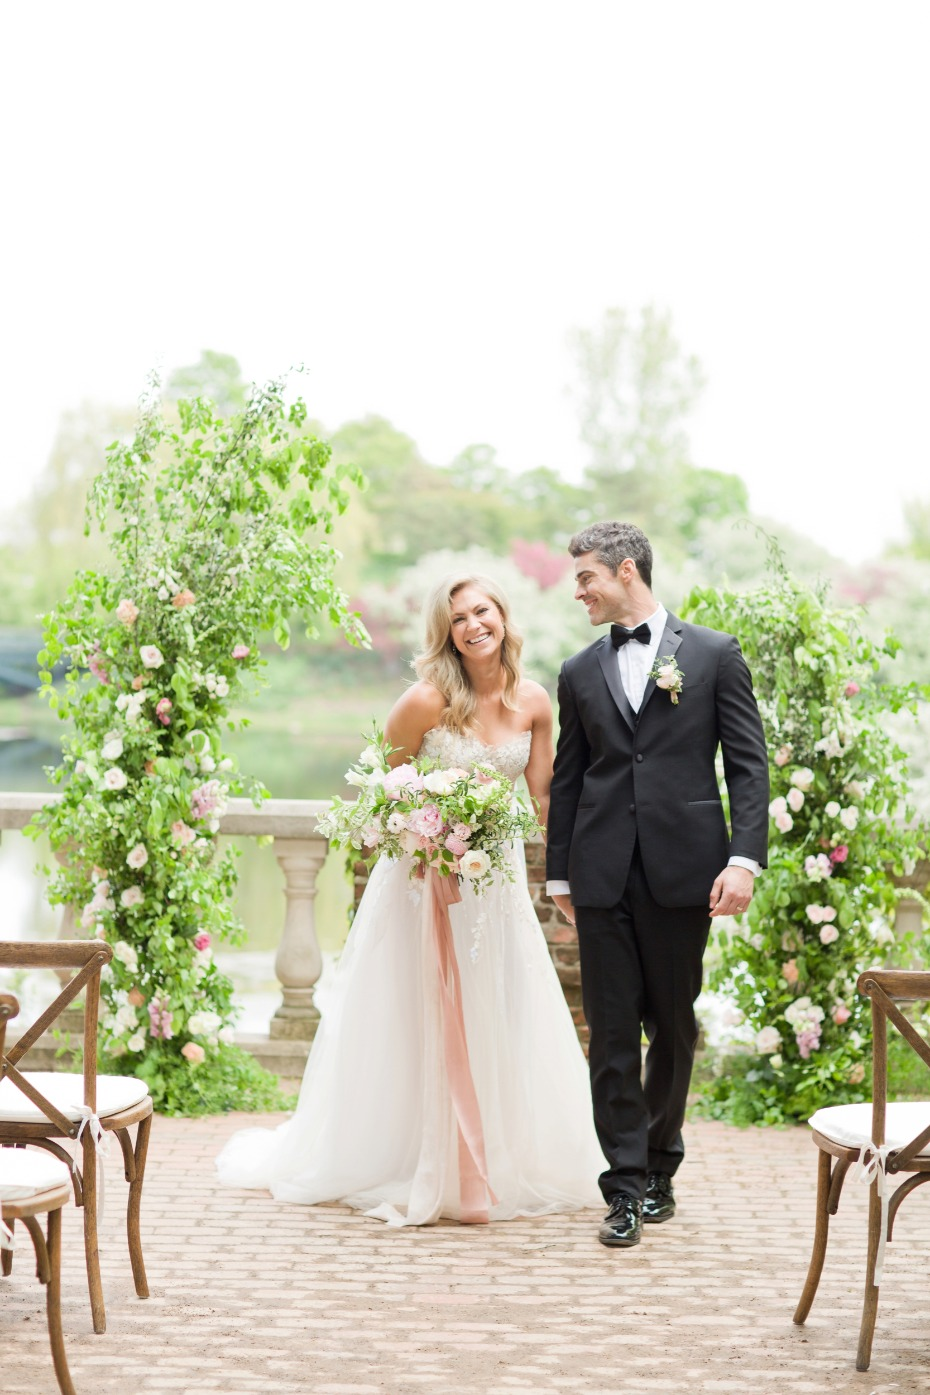 Luxurious garden wedding inspiration